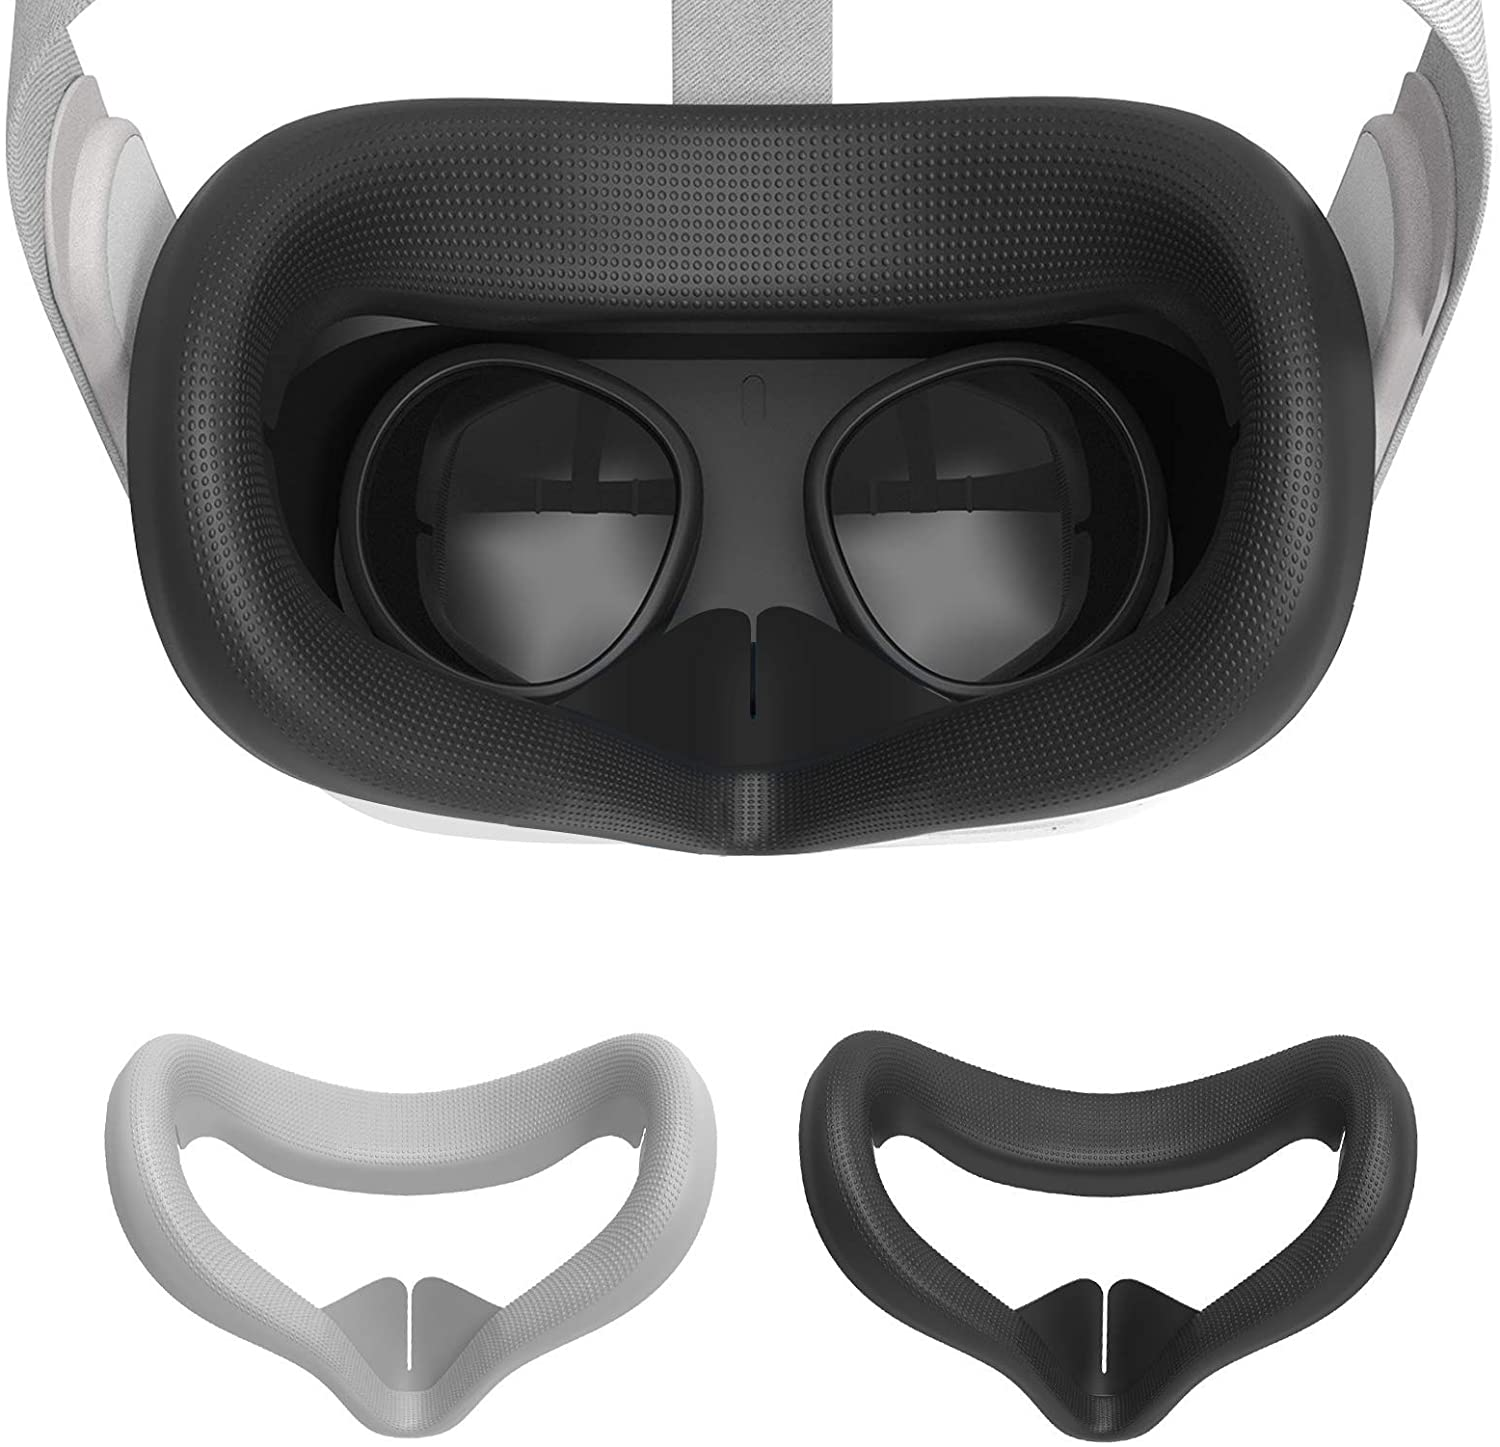 2Pcs VR Face Silicone Cover VR Silicone Cover Silicone Face Cover for Oculus Quest 2,Sweatproof, Protect Face Skin, Anti Skid, Easy to Clean and Lightproof